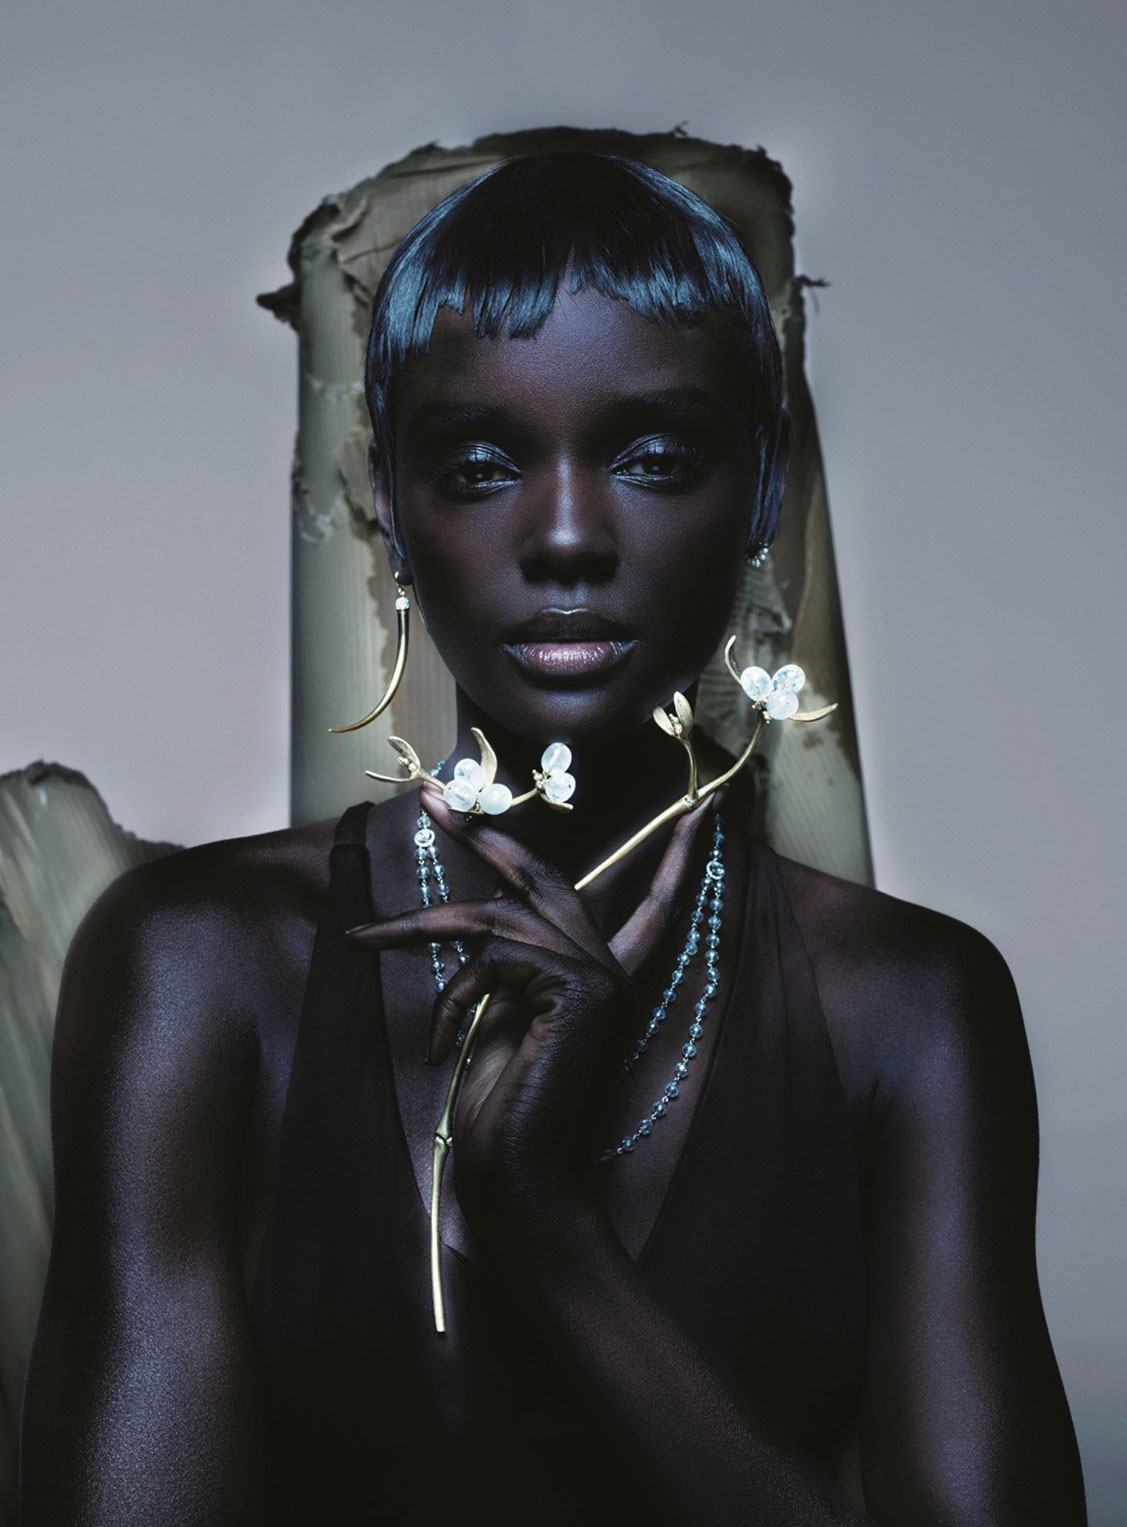 From Byzantium / Duckie Thot by Nick Knight / Vogue UK april 2019